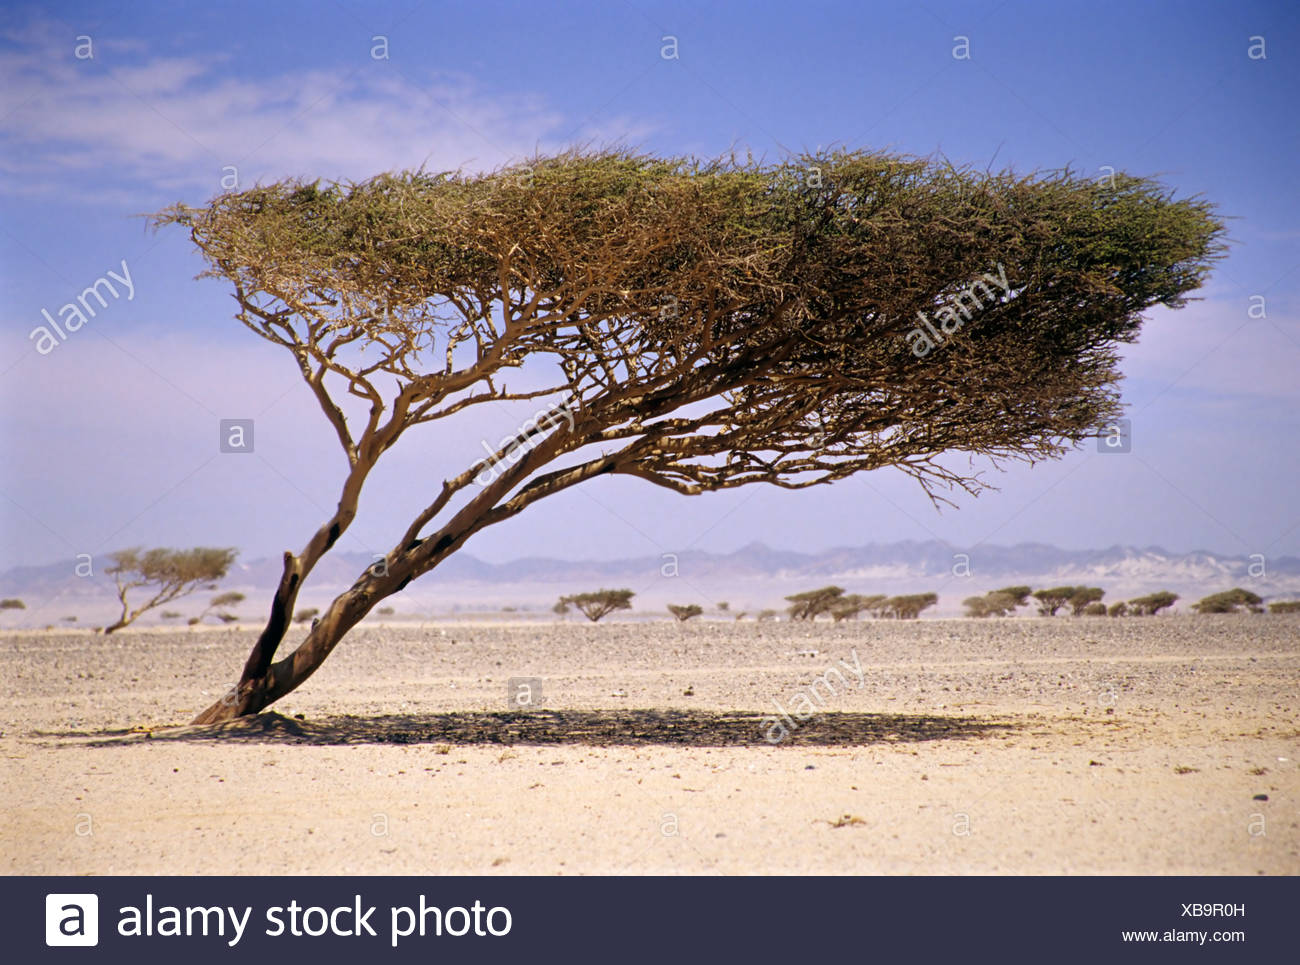 Tree bent by the wind, crooked, tree, trees, acacia, desert, Egypt, Africa - Stock Image